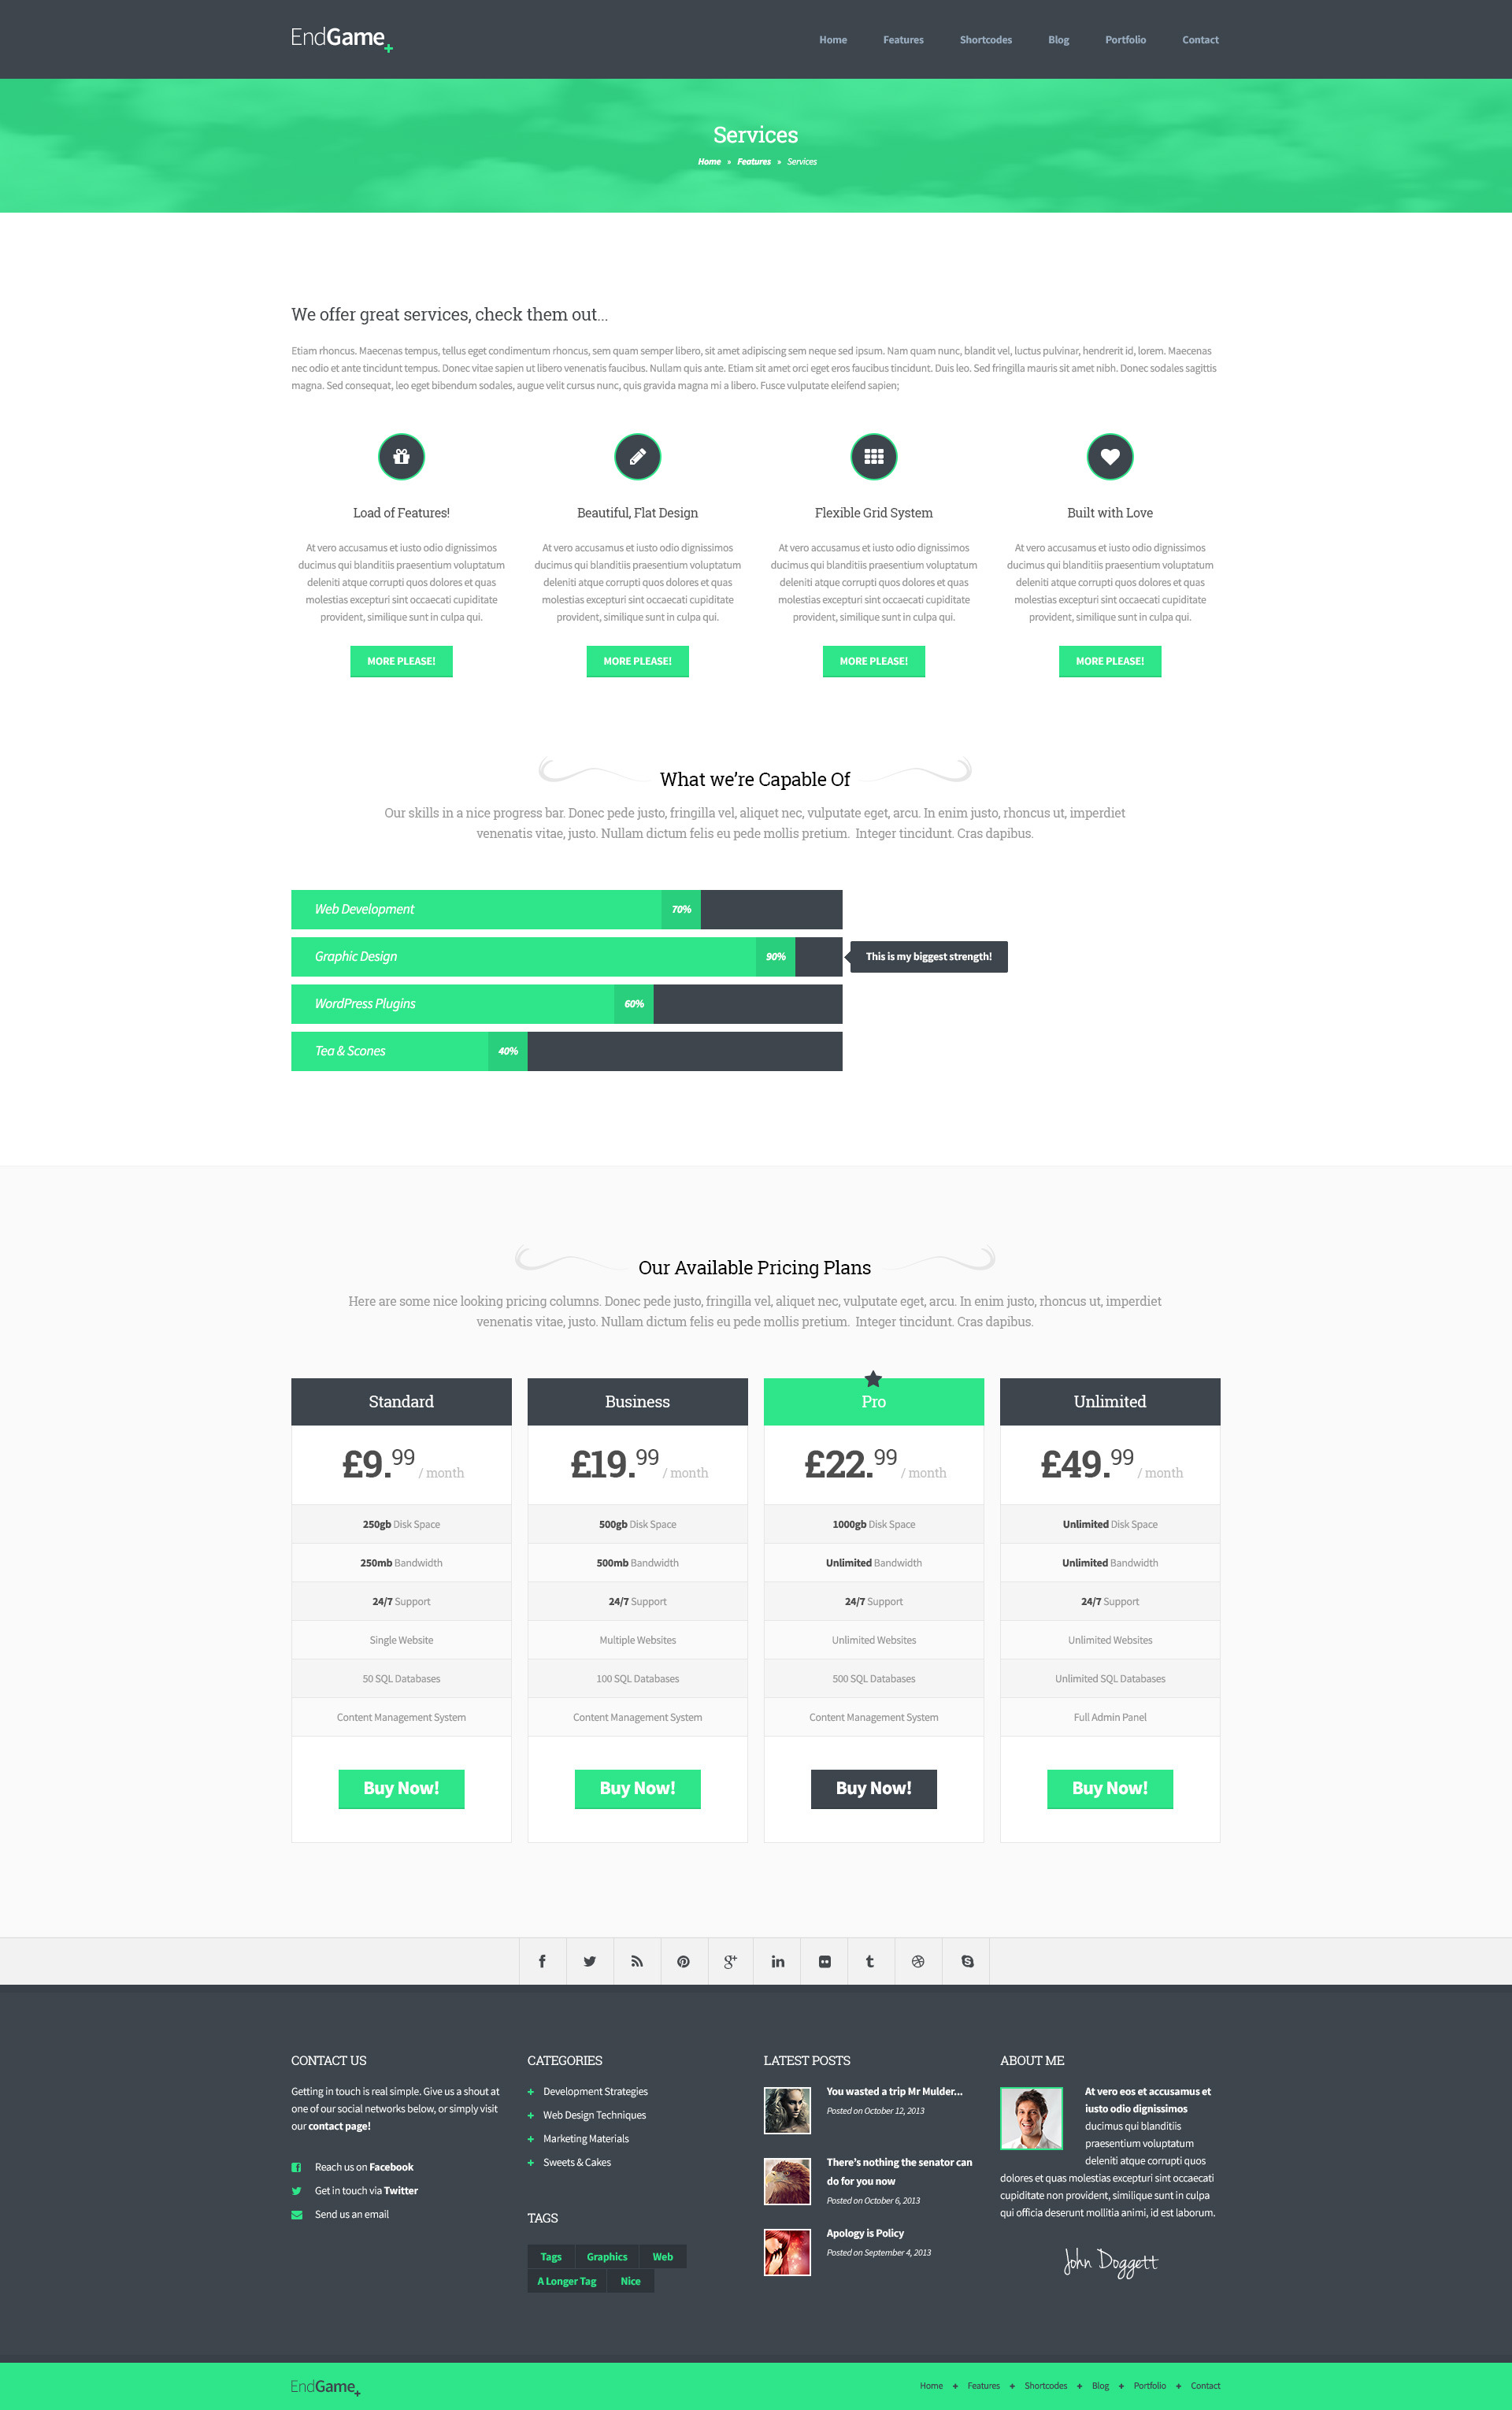 Comfortable 1 Page Proposal Template Huge 1 Page Resume Format For Freshers Square 10 Tips For Good Resume Writing 10 Window Envelope Template Old 100 Chart Template Purple2 Page Resume Header EndGame   Responsive, Retina Ready HTML Template By SubatomicThemes